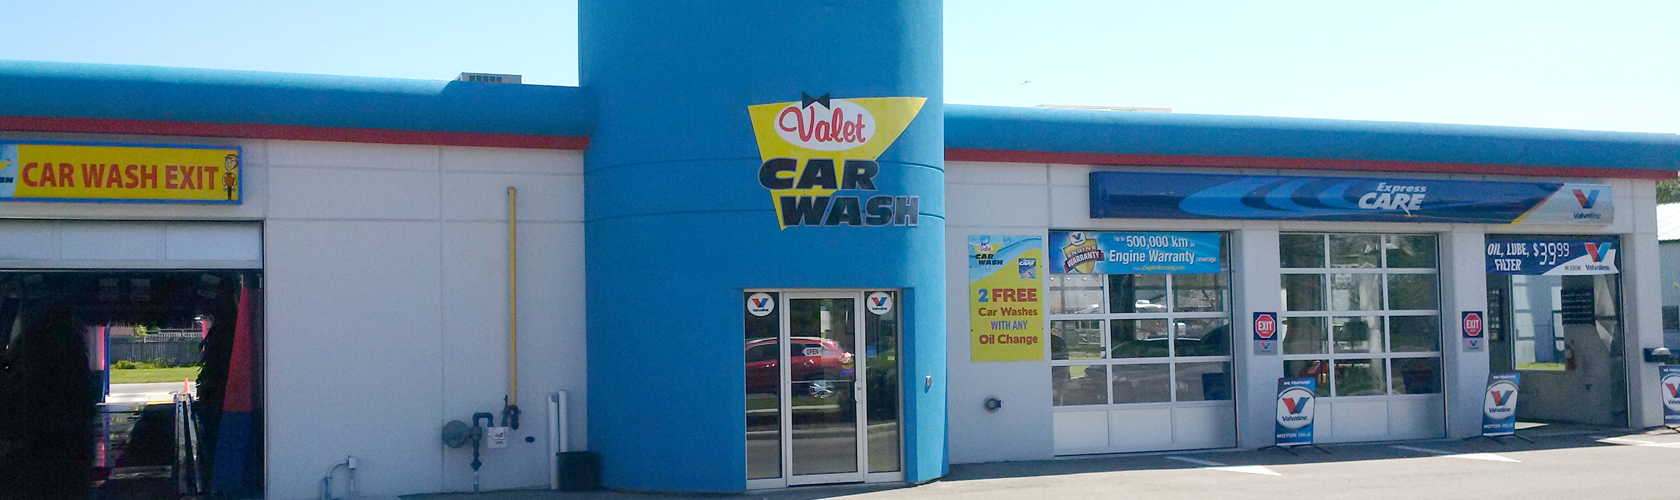 Valet car wash cambridge on solutioingenieria